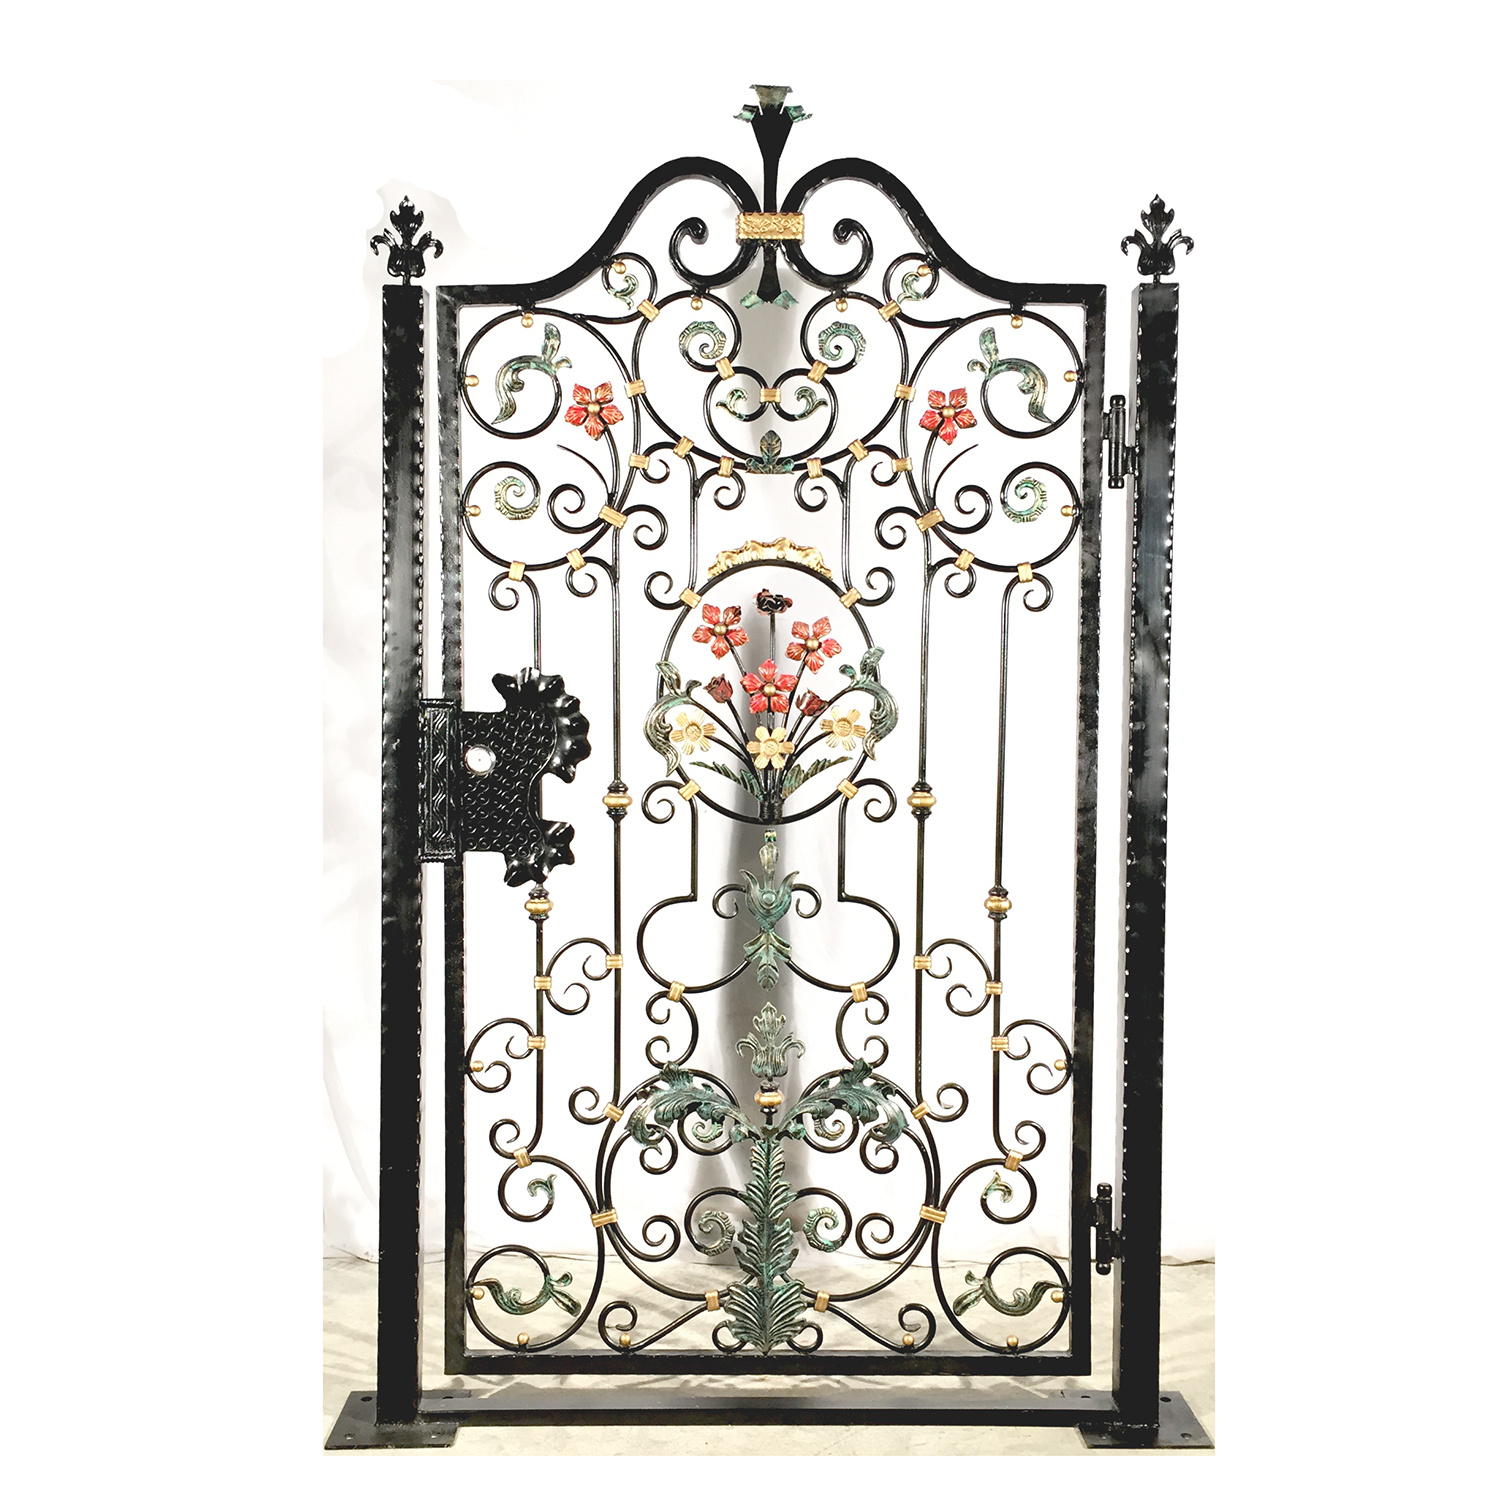 ING240 Iron Piedmont Gate Metropolitan Galleries Inc.